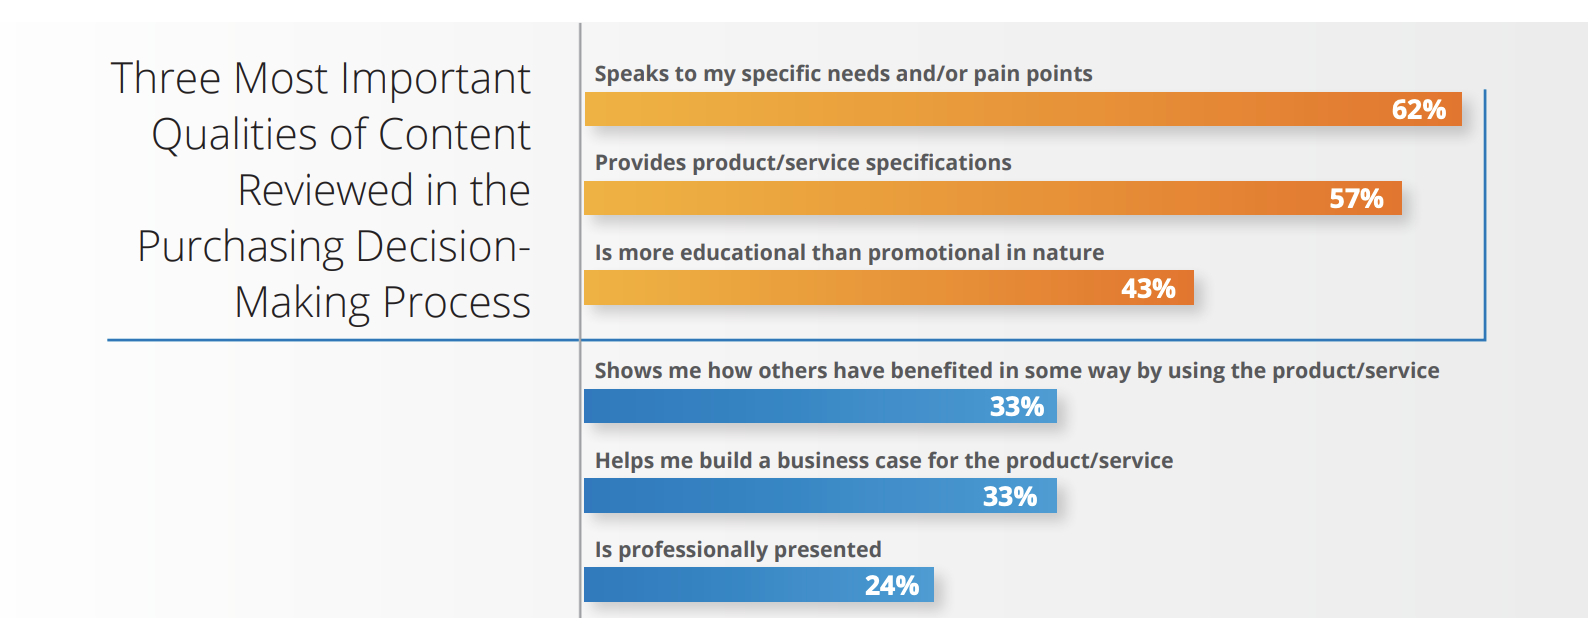 62% of customers want marketing content that speaks to pain points.